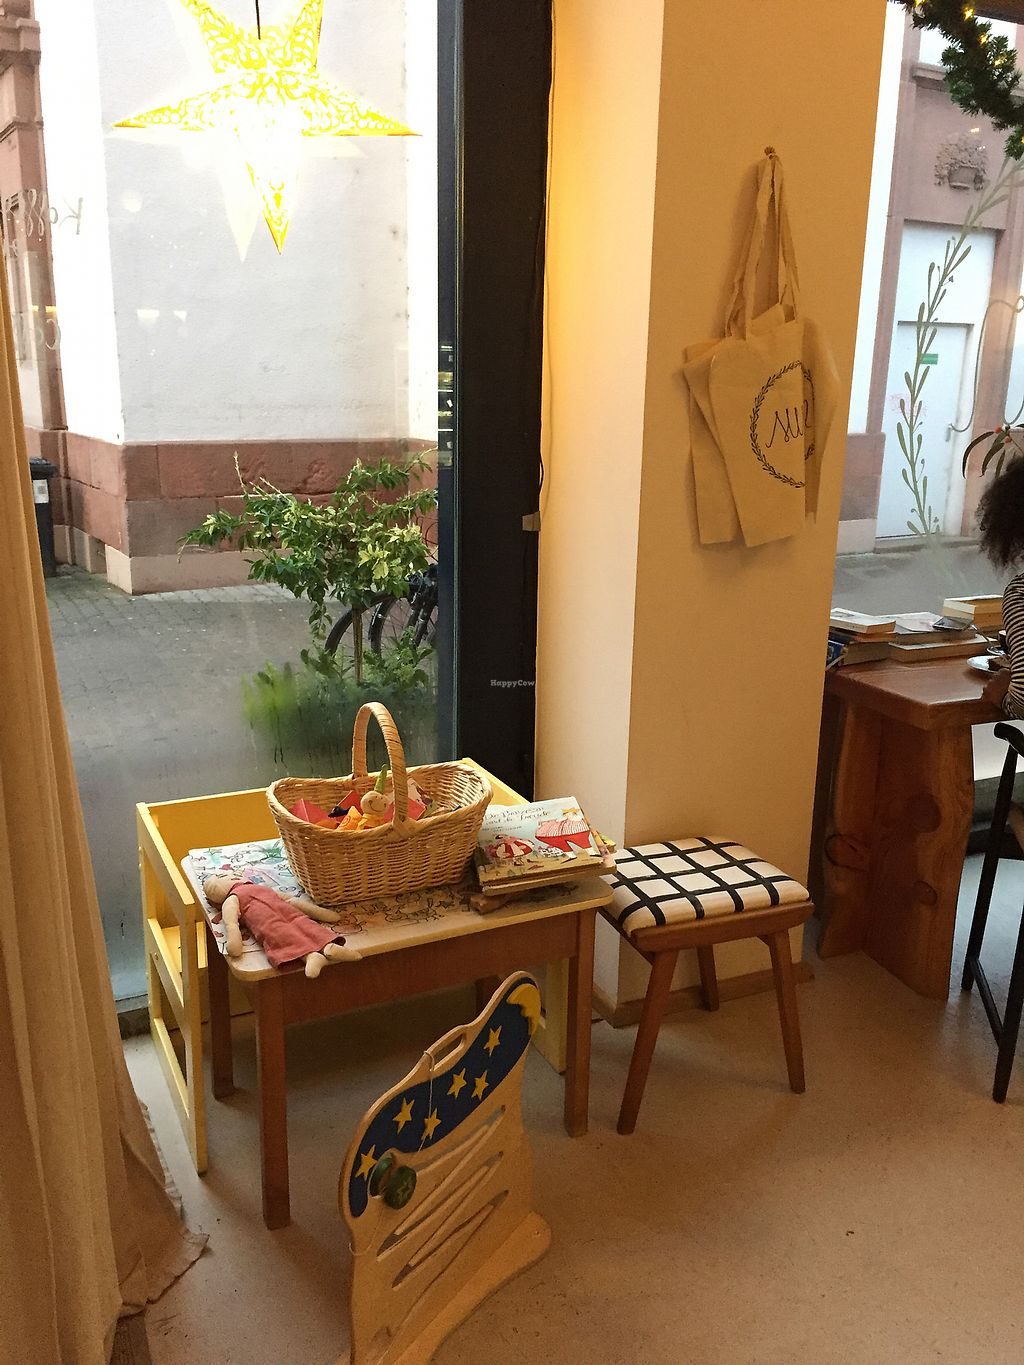 "Photo of Café Susann  by <a href=""/members/profile/amysworld"">amysworld</a> <br/>Kid friendly :-) <br/> December 27, 2017  - <a href='/contact/abuse/image/90485/339620'>Report</a>"